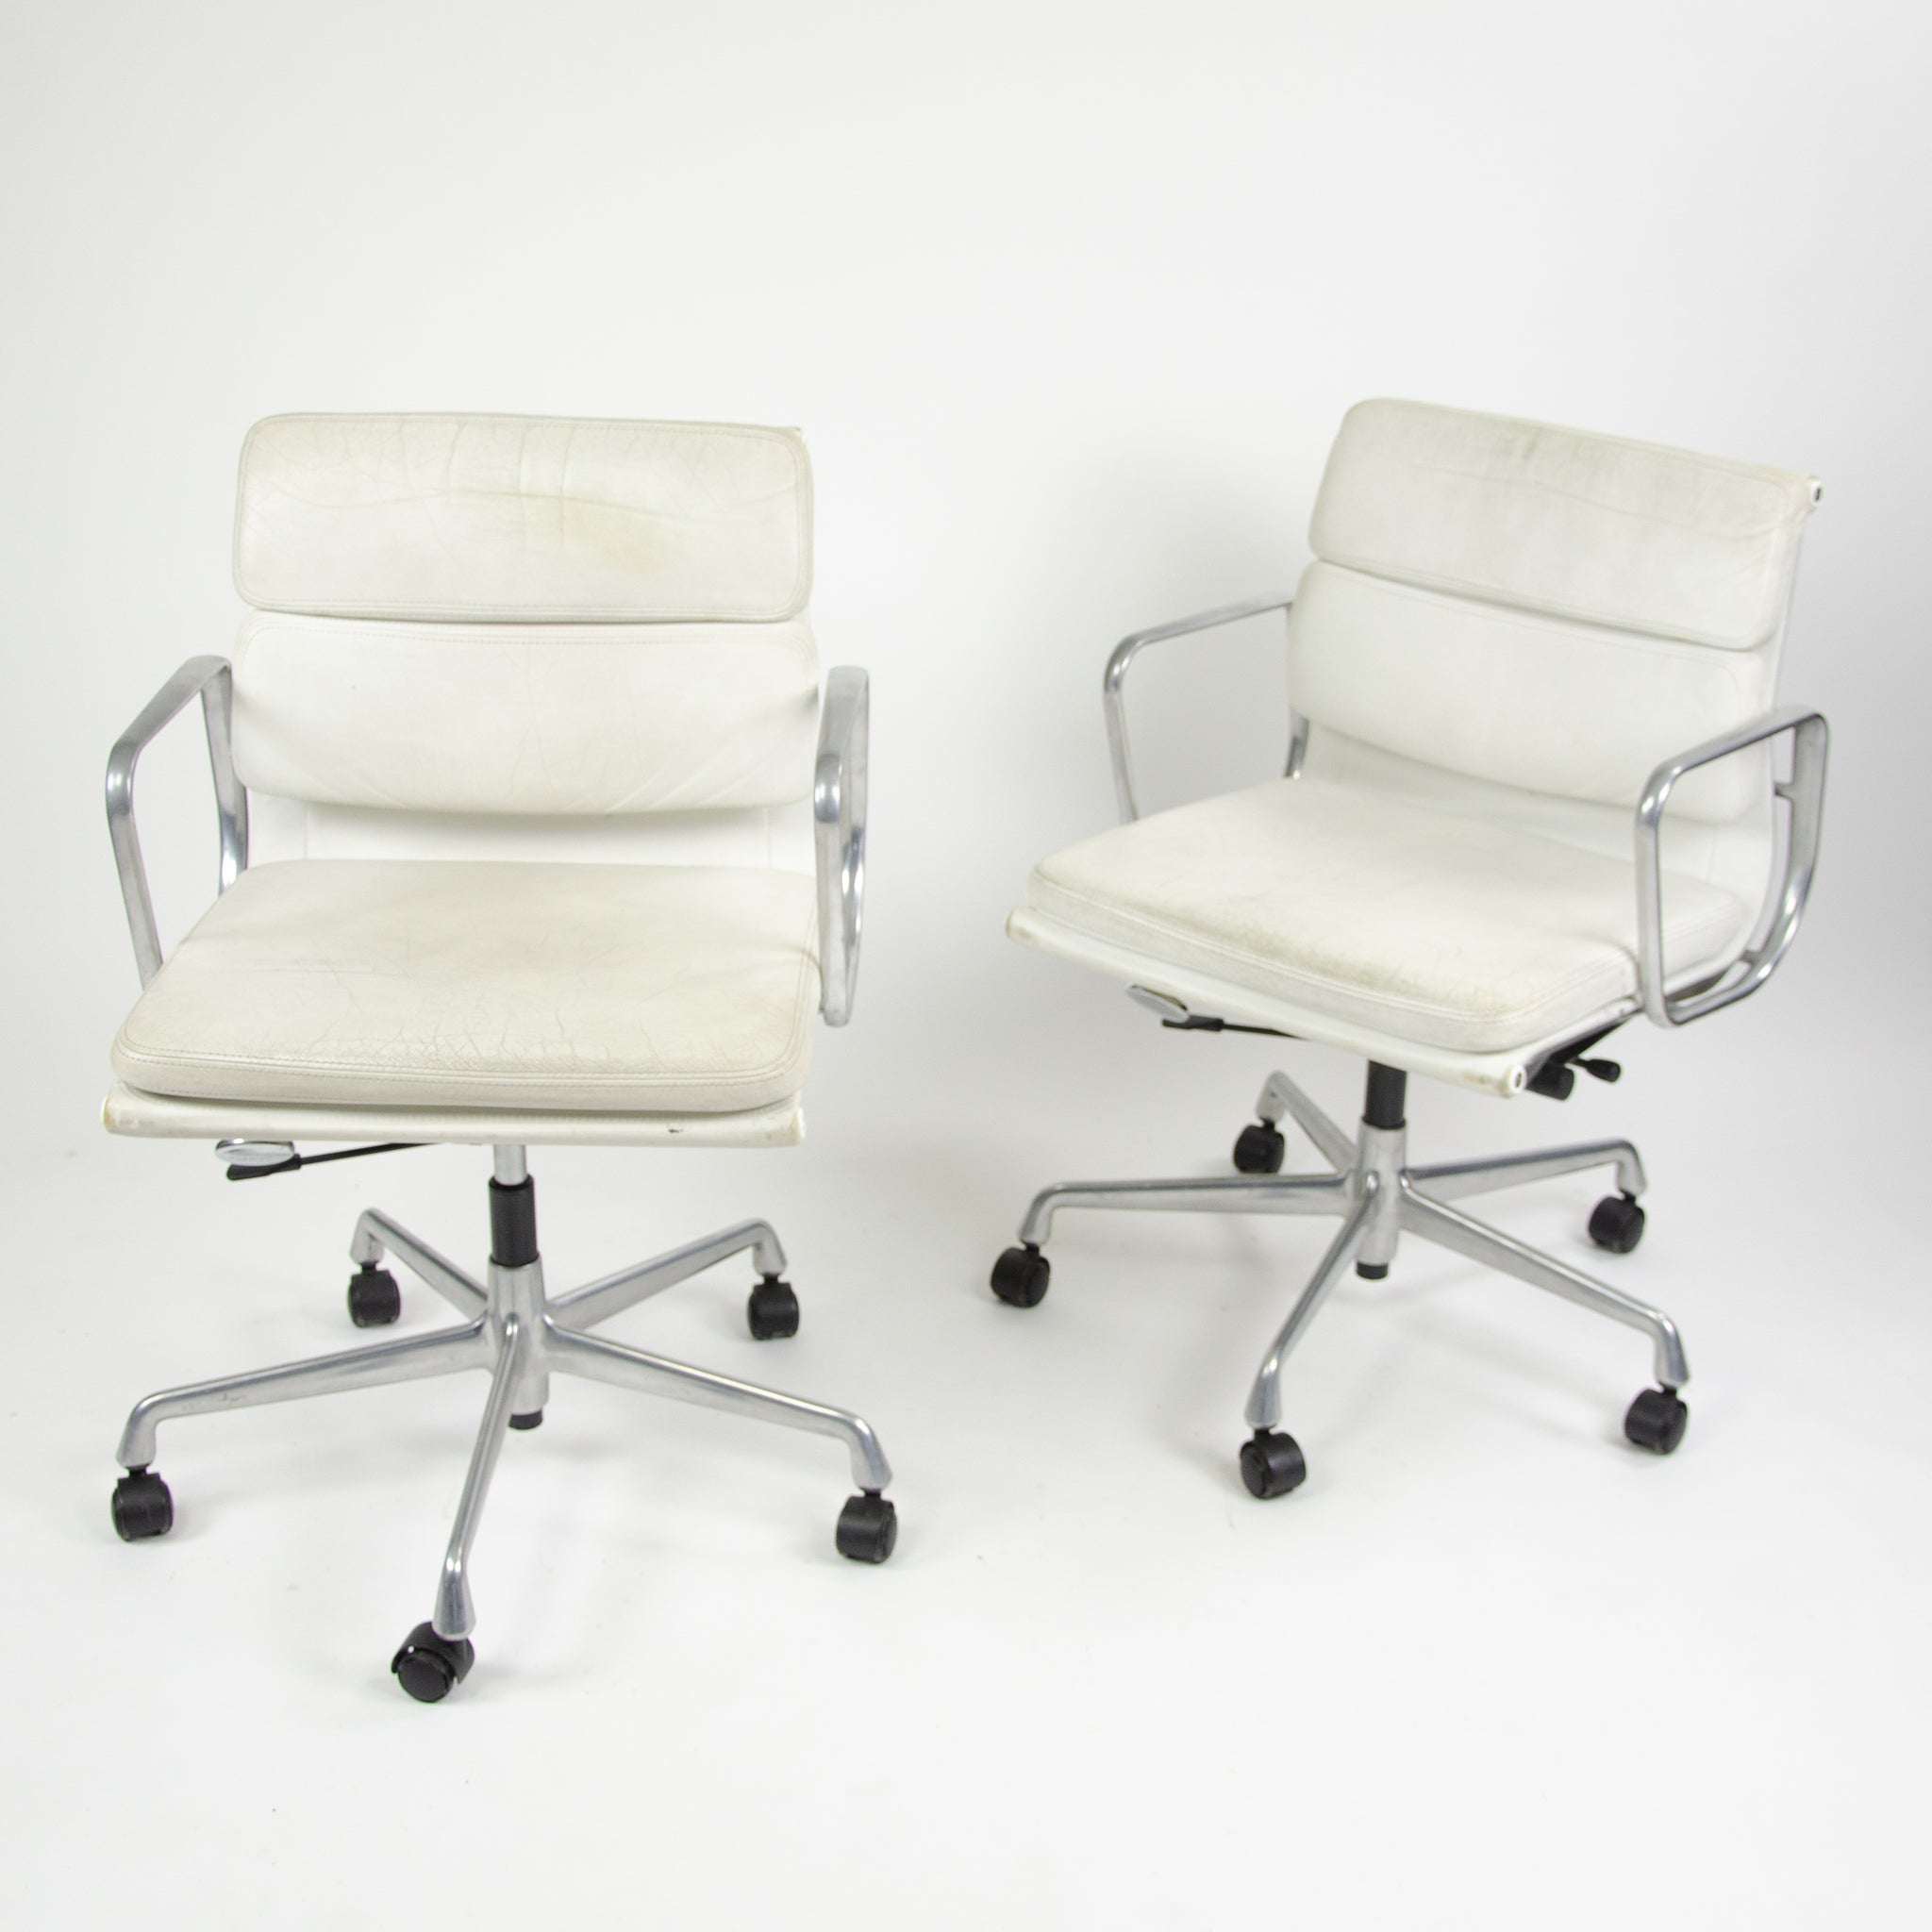 Superb Sold Pair Eames Herman Miller Vitra Soft Pad Aluminum Chairs Machost Co Dining Chair Design Ideas Machostcouk